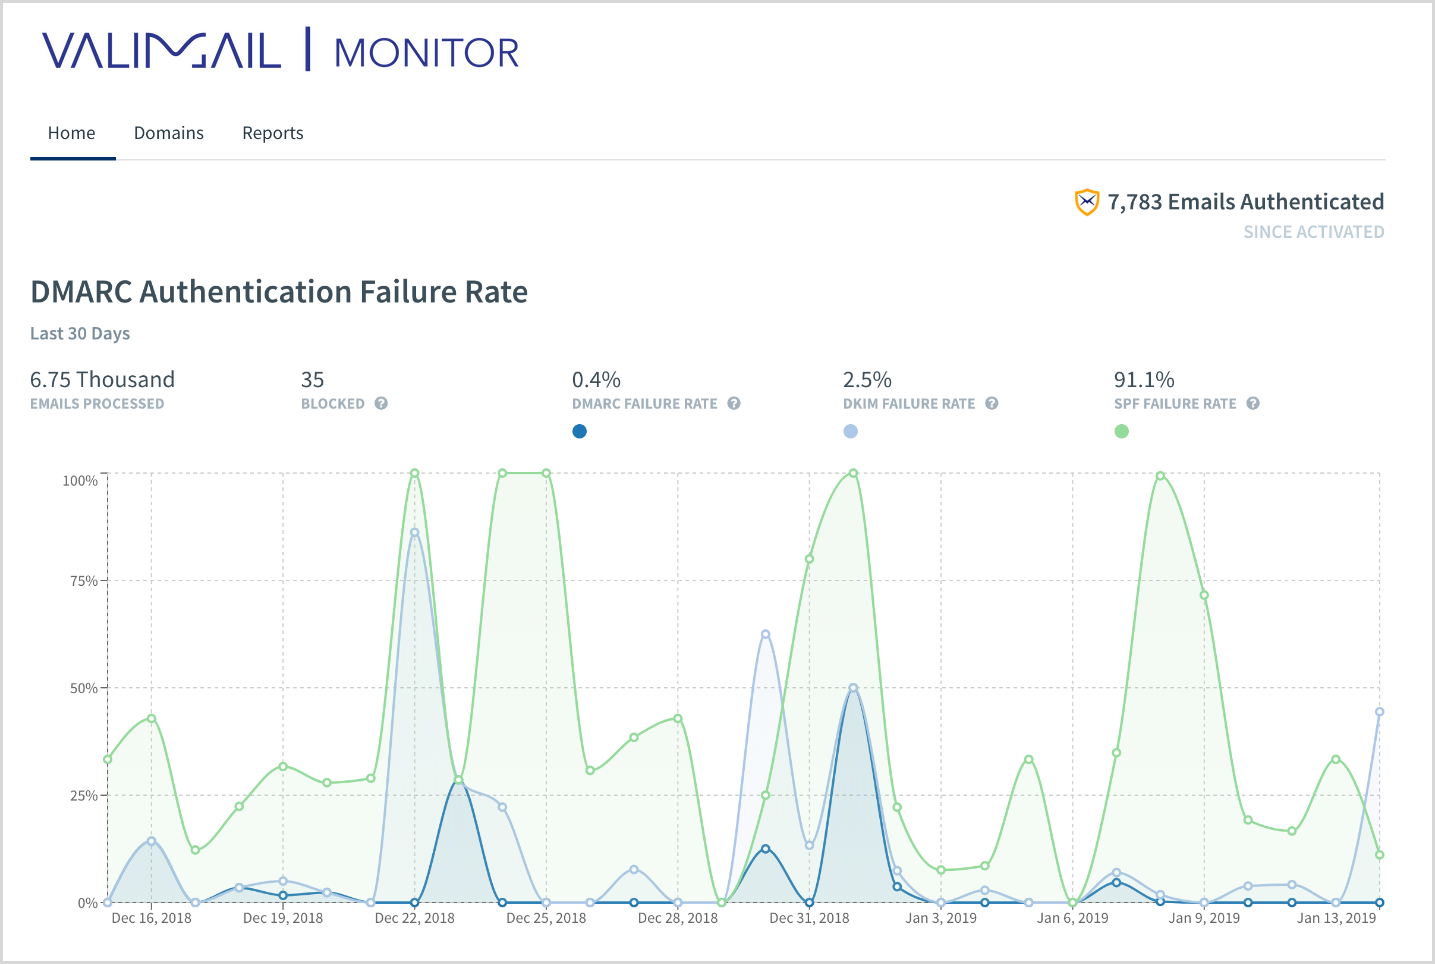 Image showing the DMARC Authentication Failure Rate in the Valimail Monitor dashboard.